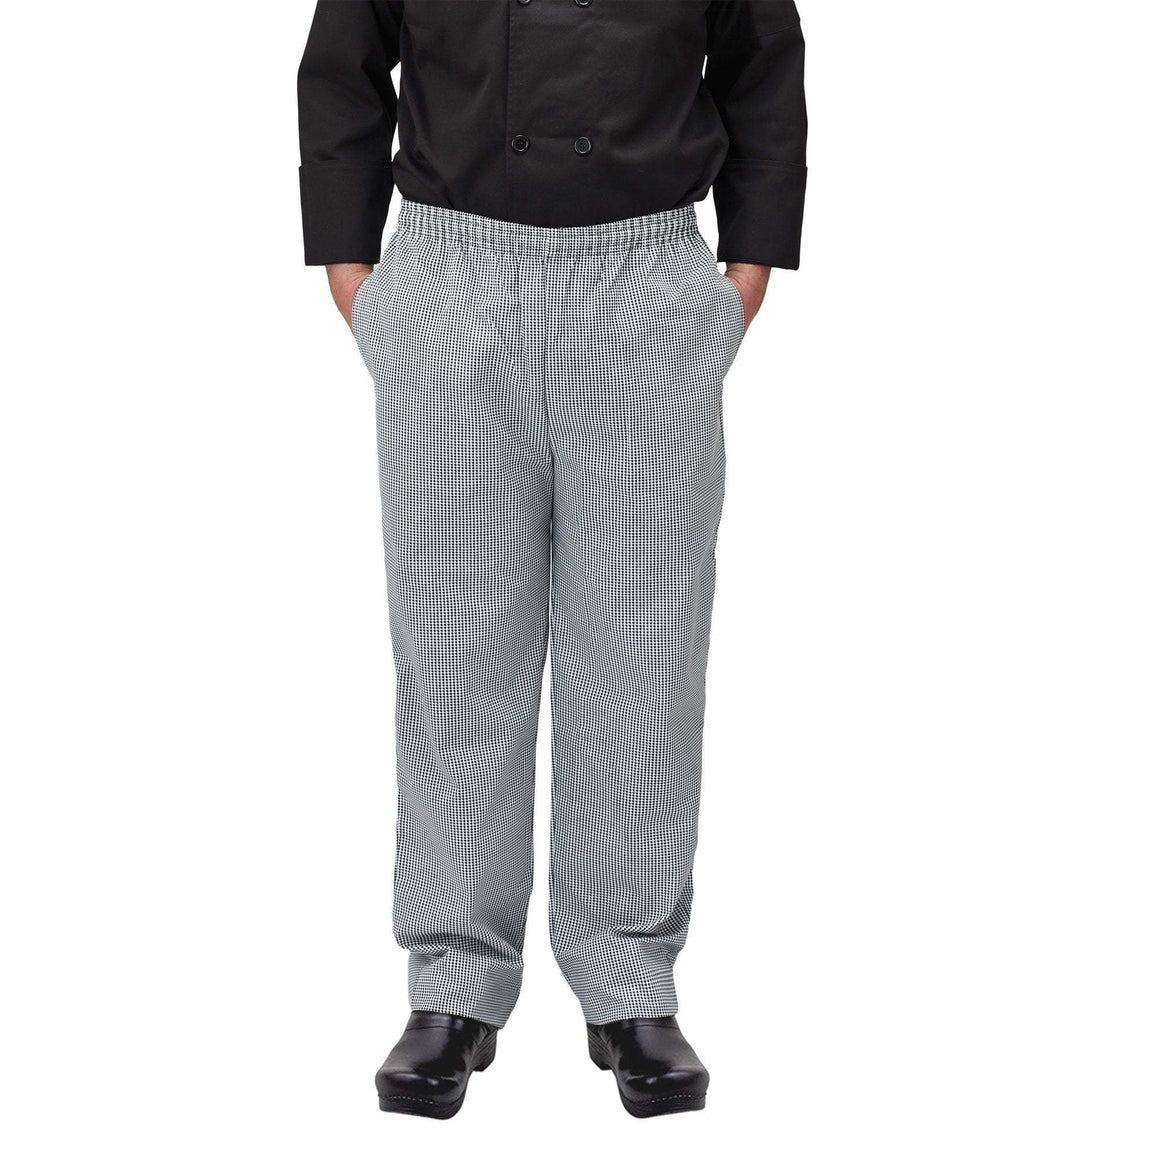 Winco - UNF-4KXL - Chef pants, houndstooth, XL - Apparel